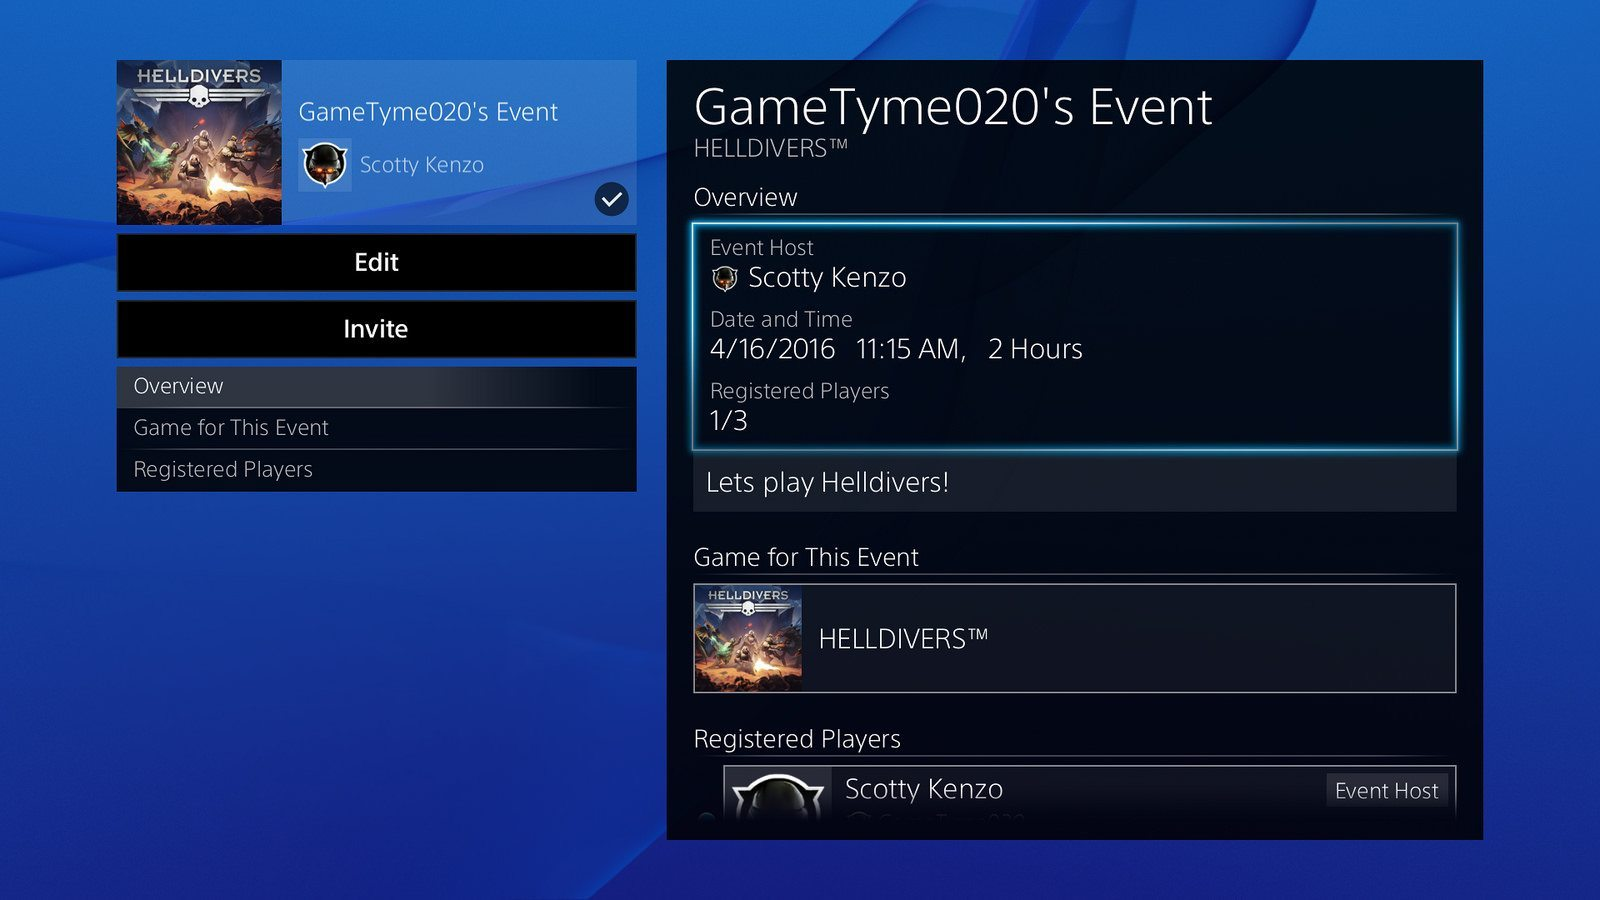 PlayStation 3.50 events